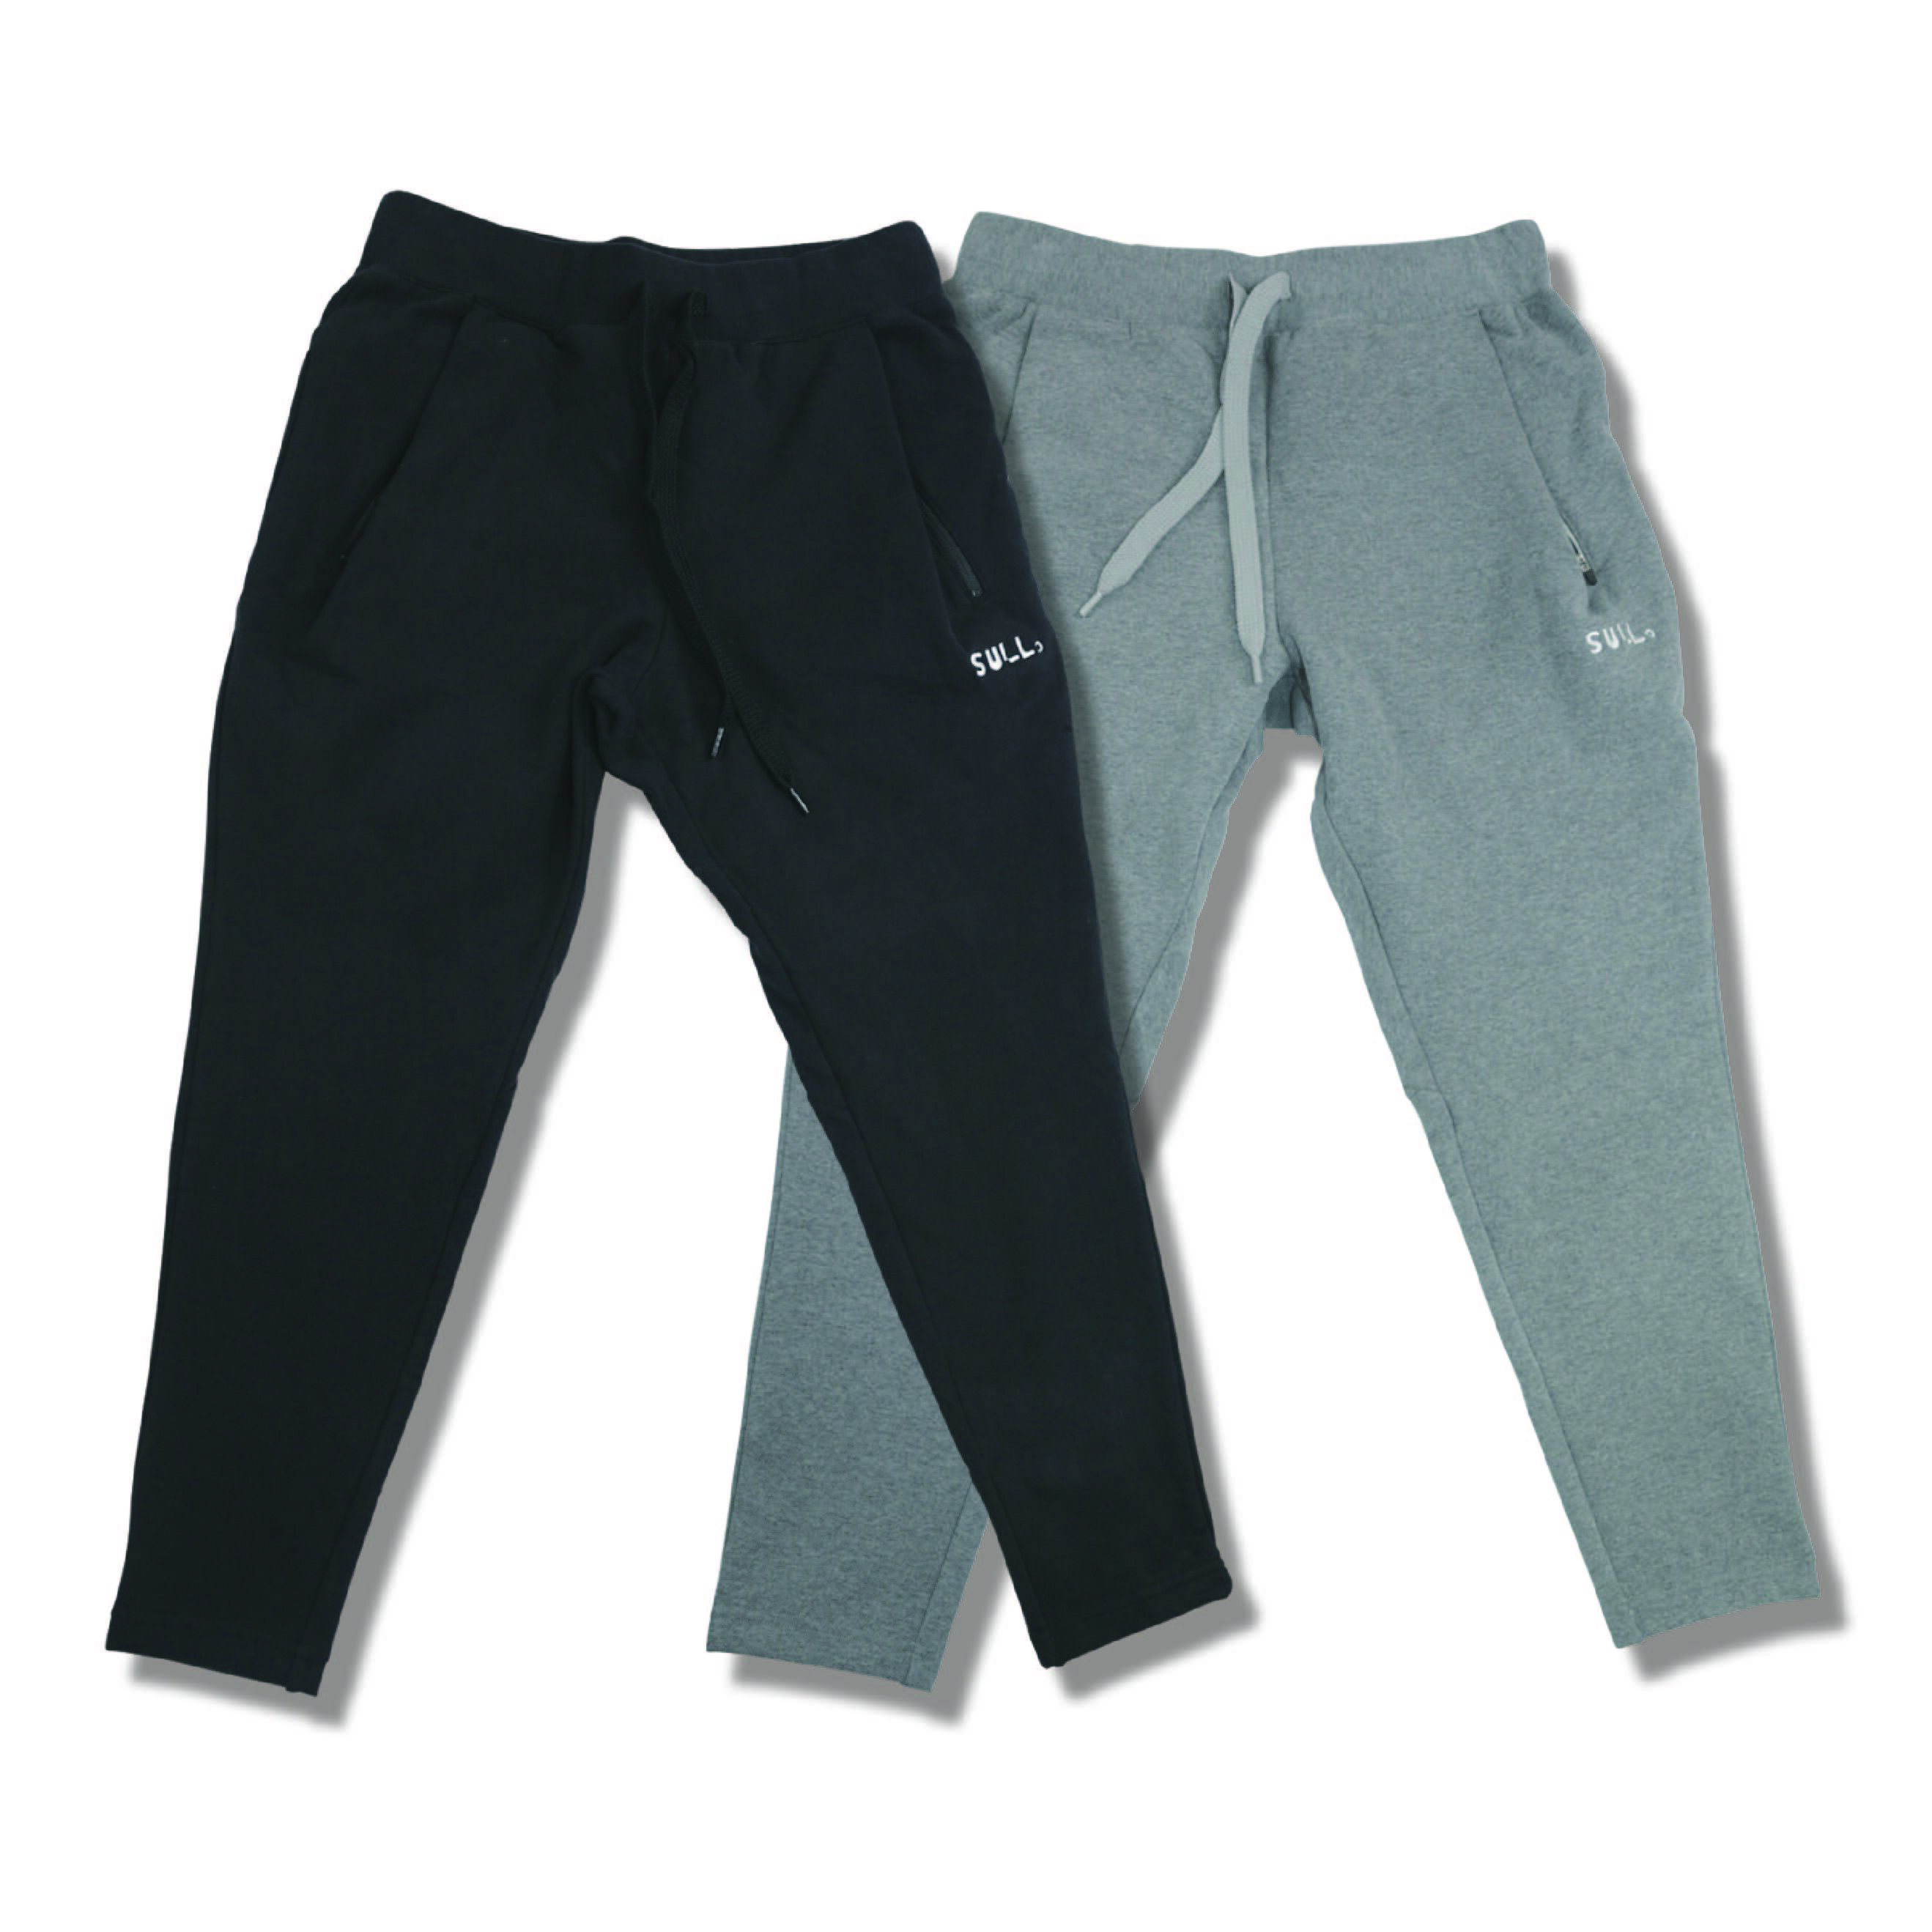 QUICK WALK PANTS(全2カラー)